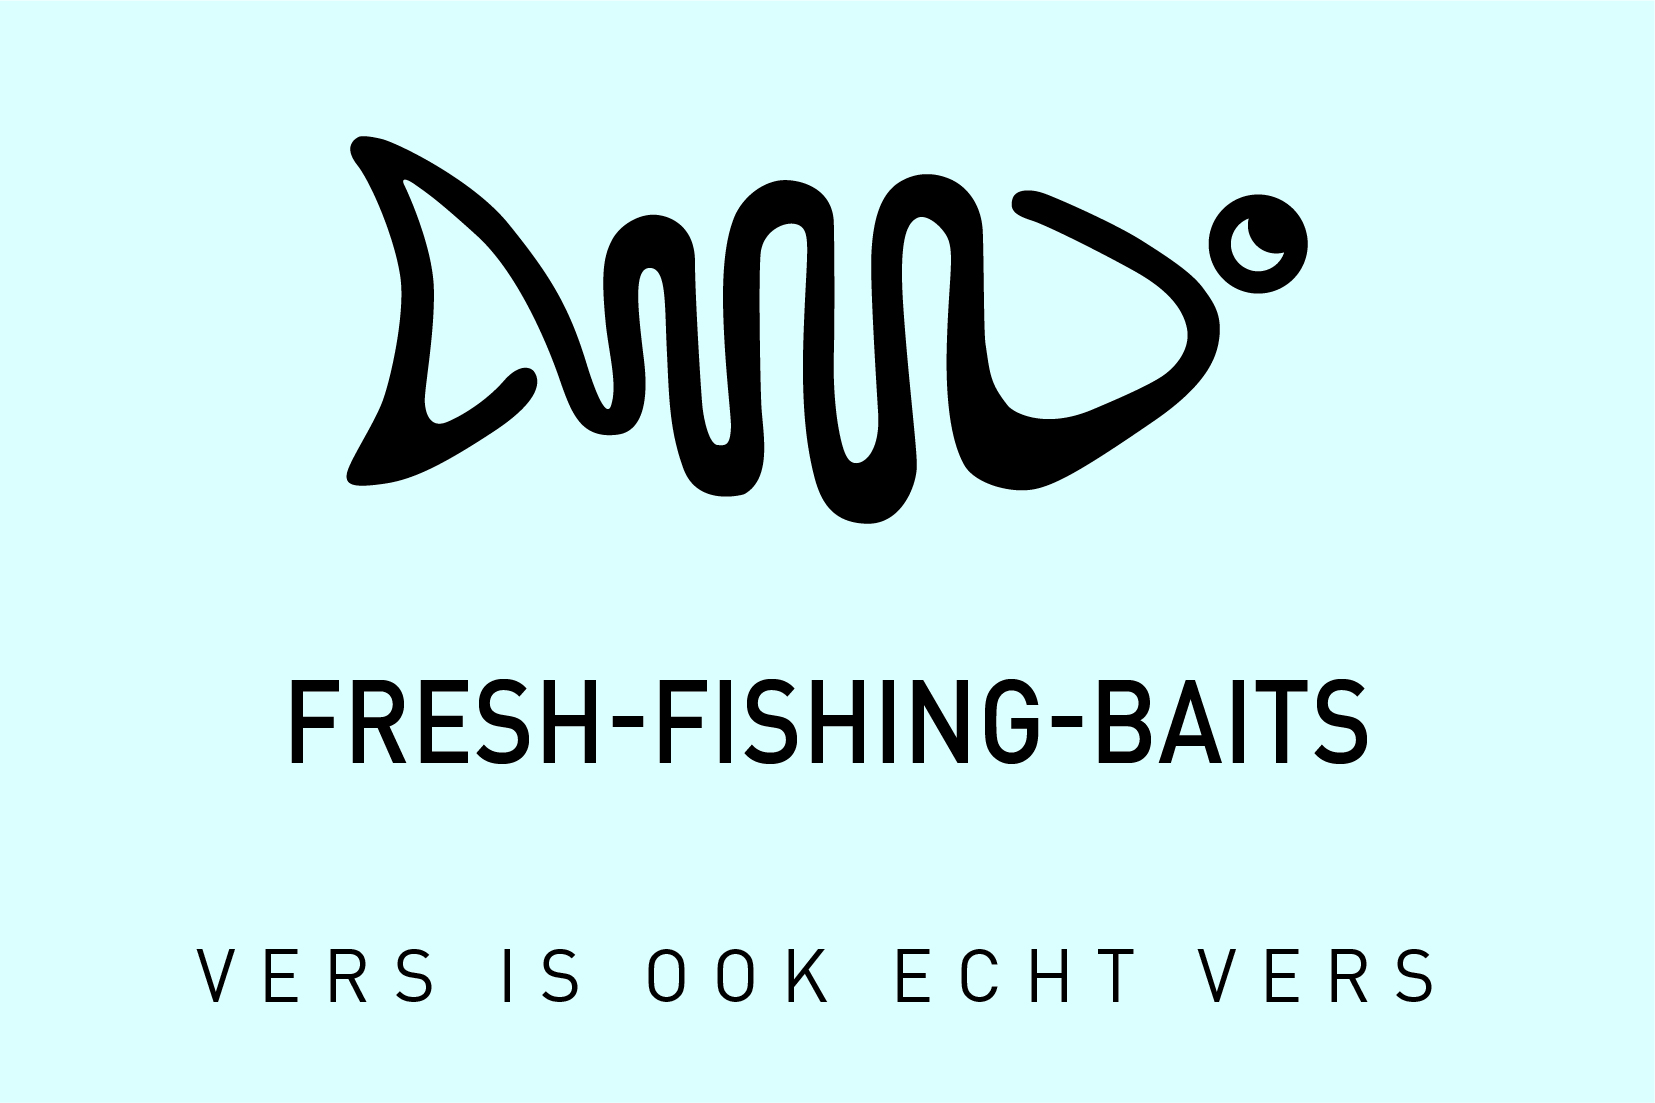 Fresh fishing baits